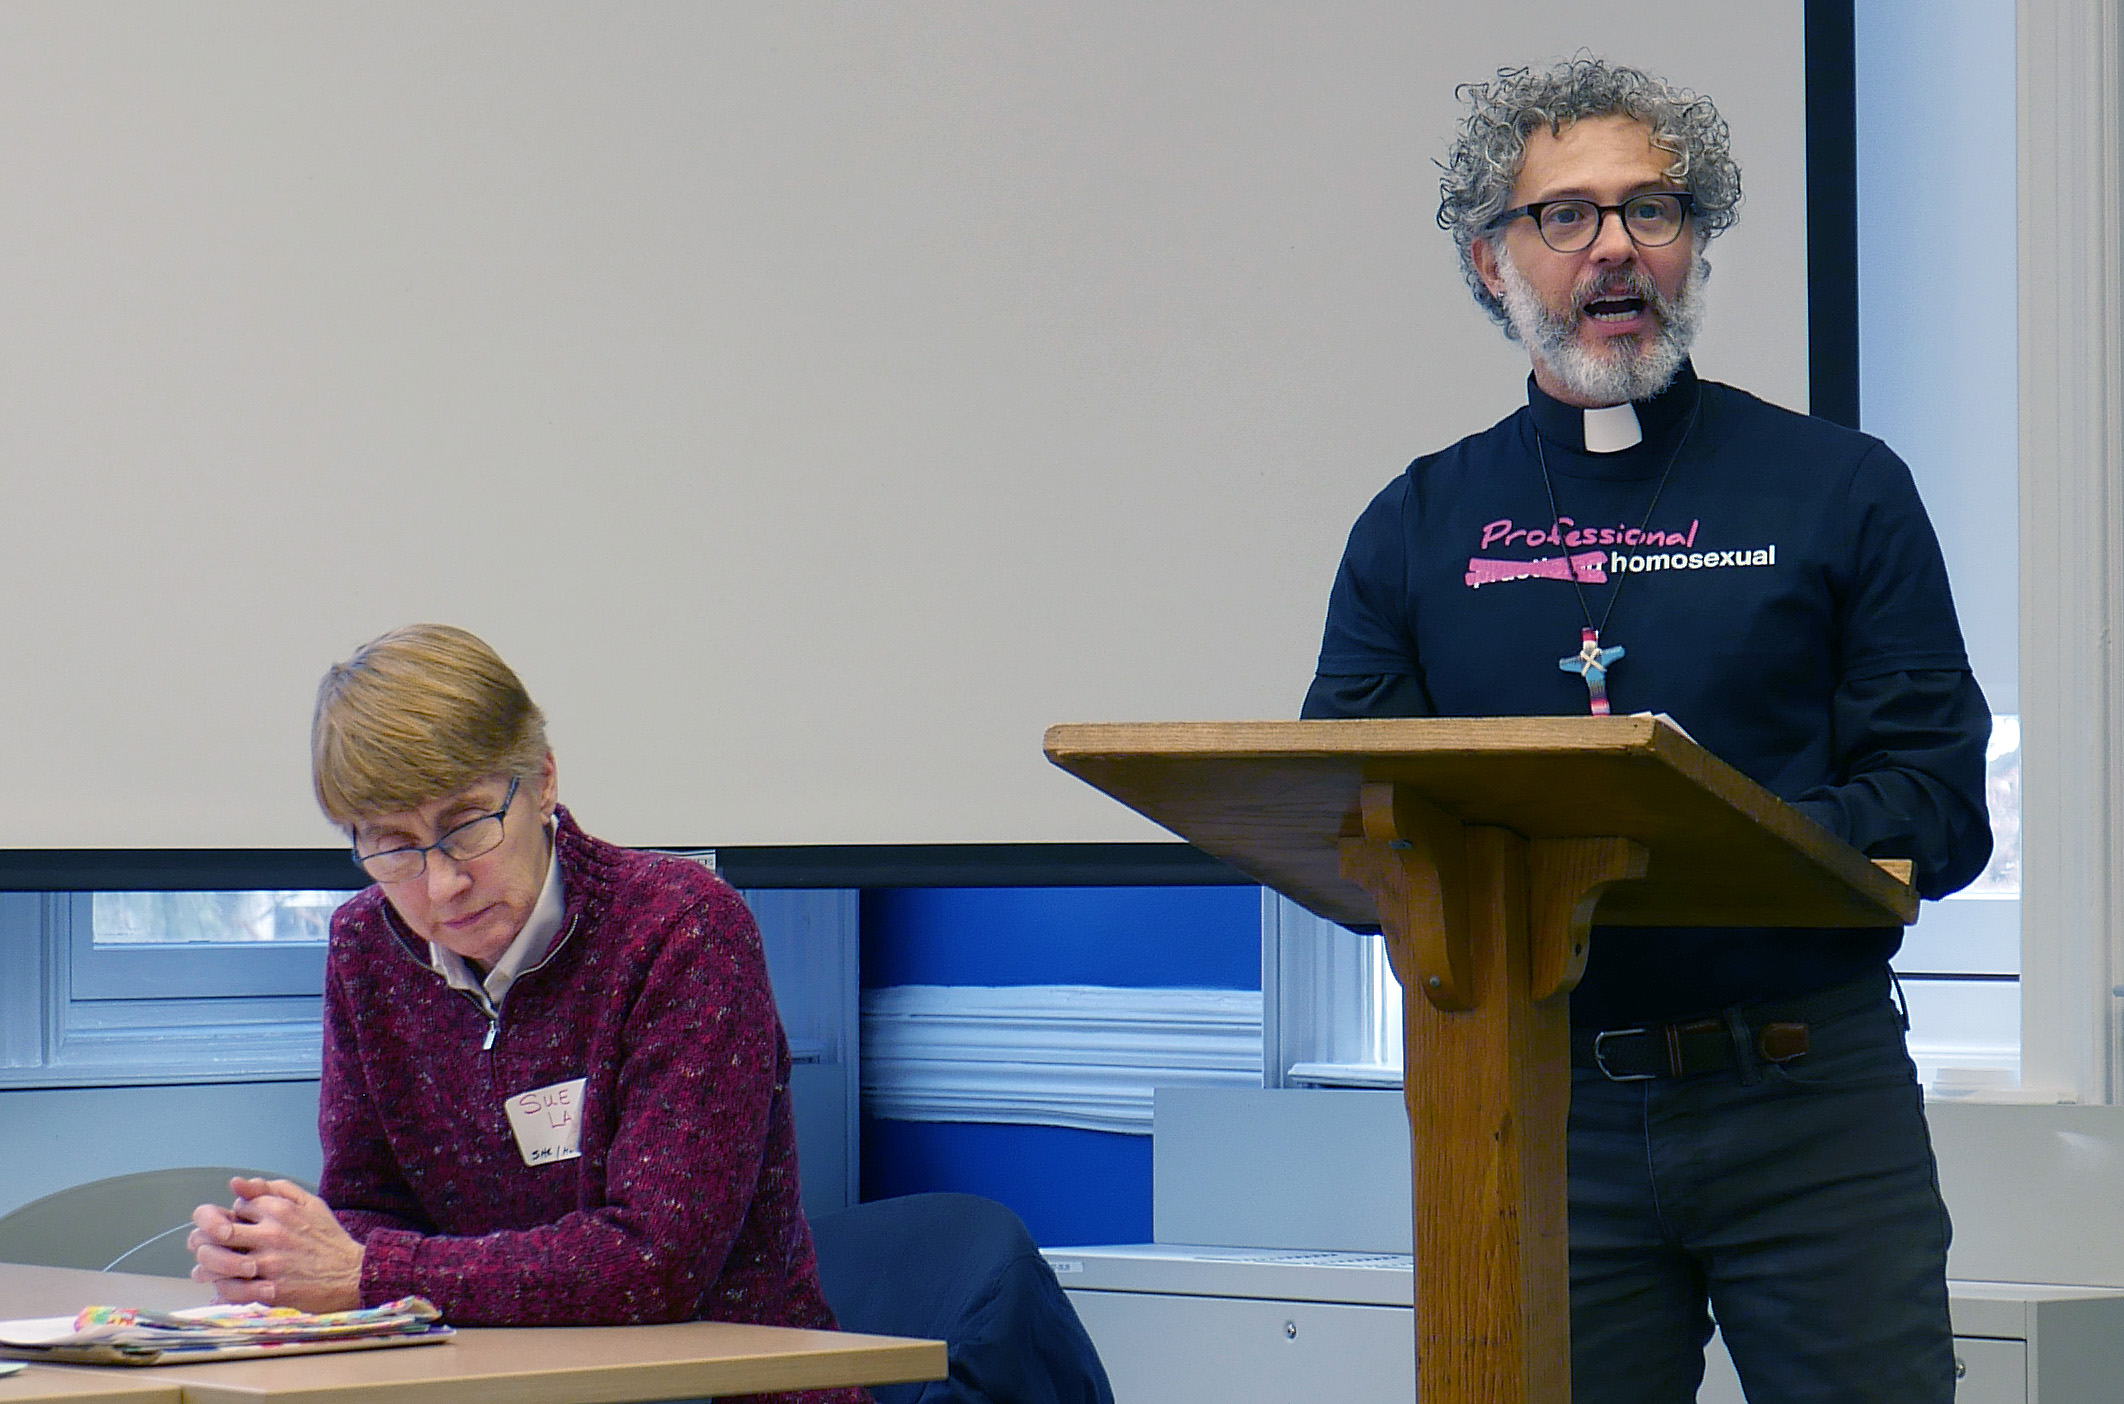 The Rev. Alex da Silva Souto, pastor and co-convener of the unofficial United Methodist Queer Clergy Caucus, talks about the Simple Plan. Sue Laurie, a longtime activist for LGBTQ equality in the church, sits listening. Photo by Heather Hahn, UMNS.